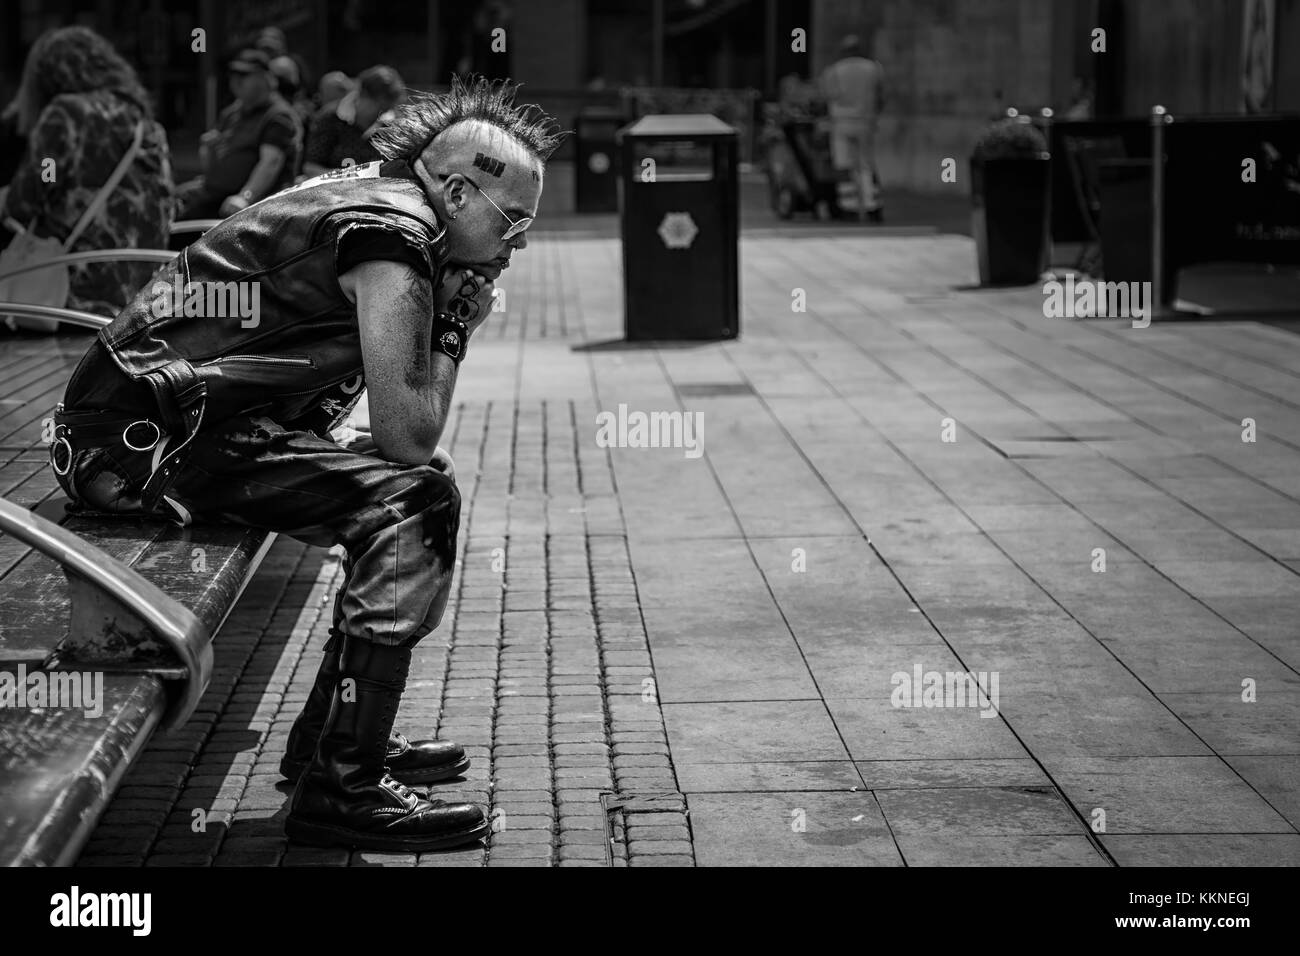 Punk Rocker Sat in Piccadilly Gardens in Manchester City Centre, England, UK - Stock Image